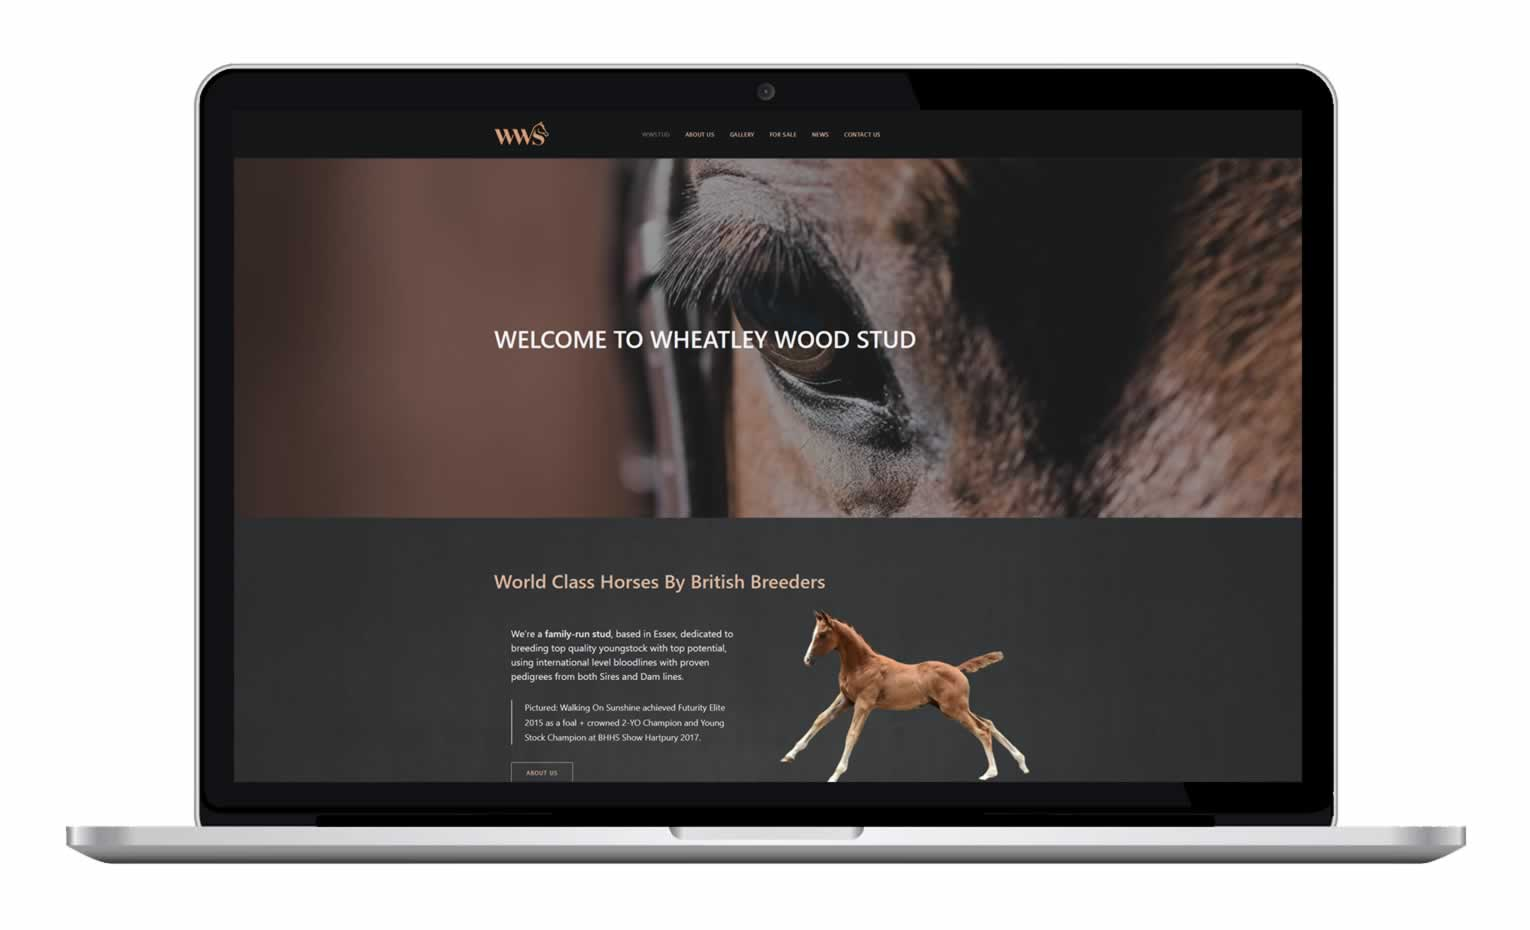 WW Stud - Horse Breeder Website